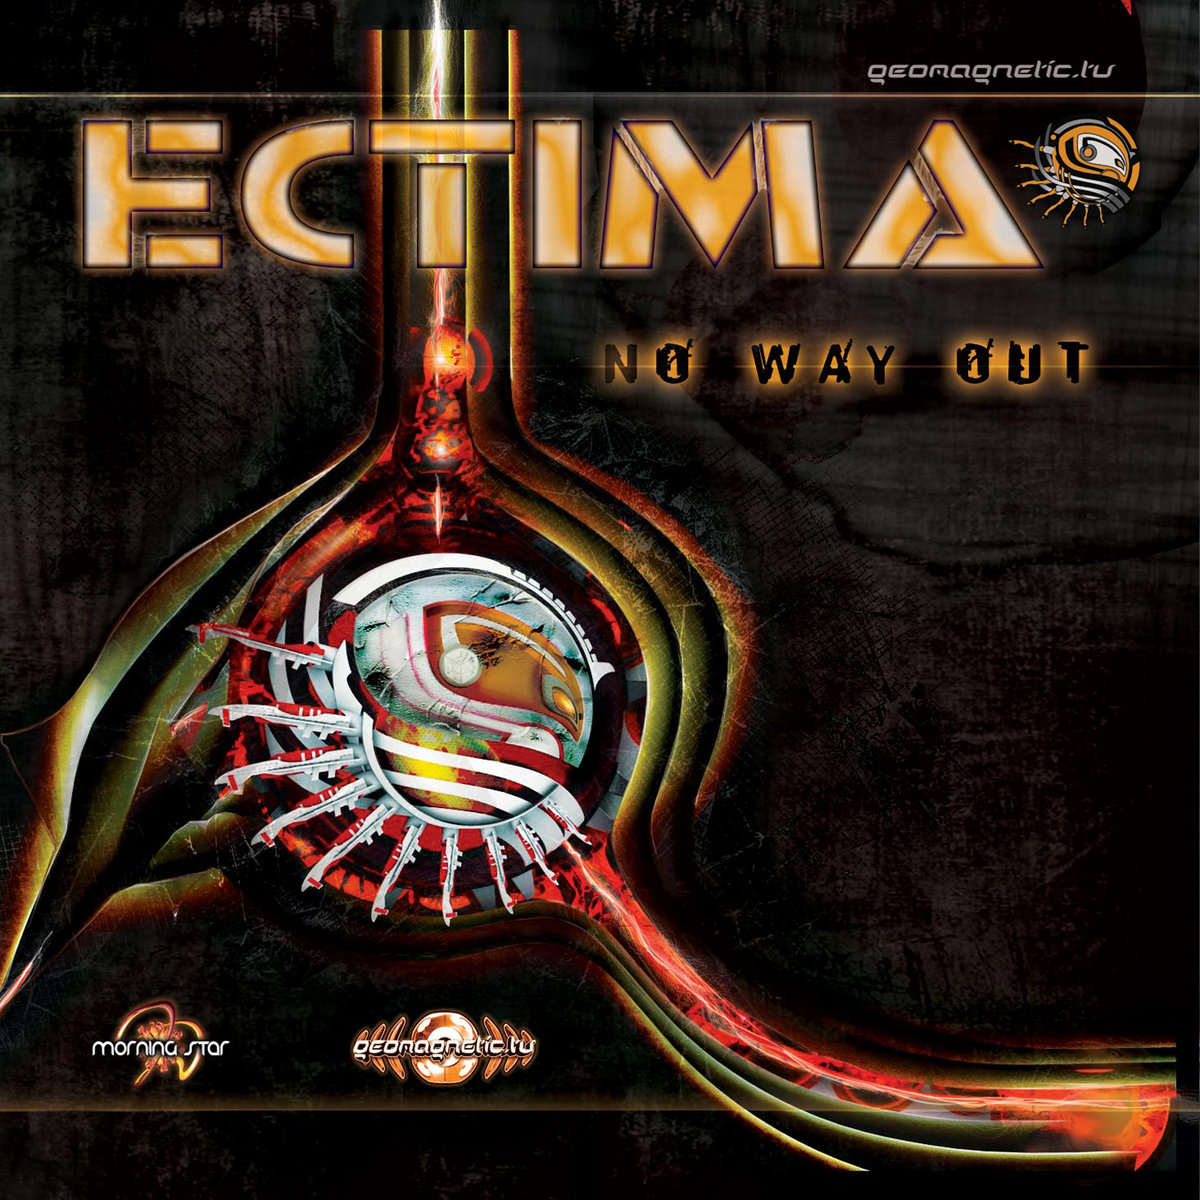 Ectima - No Way Out @ 'No Way Out' album (electronic, goa)